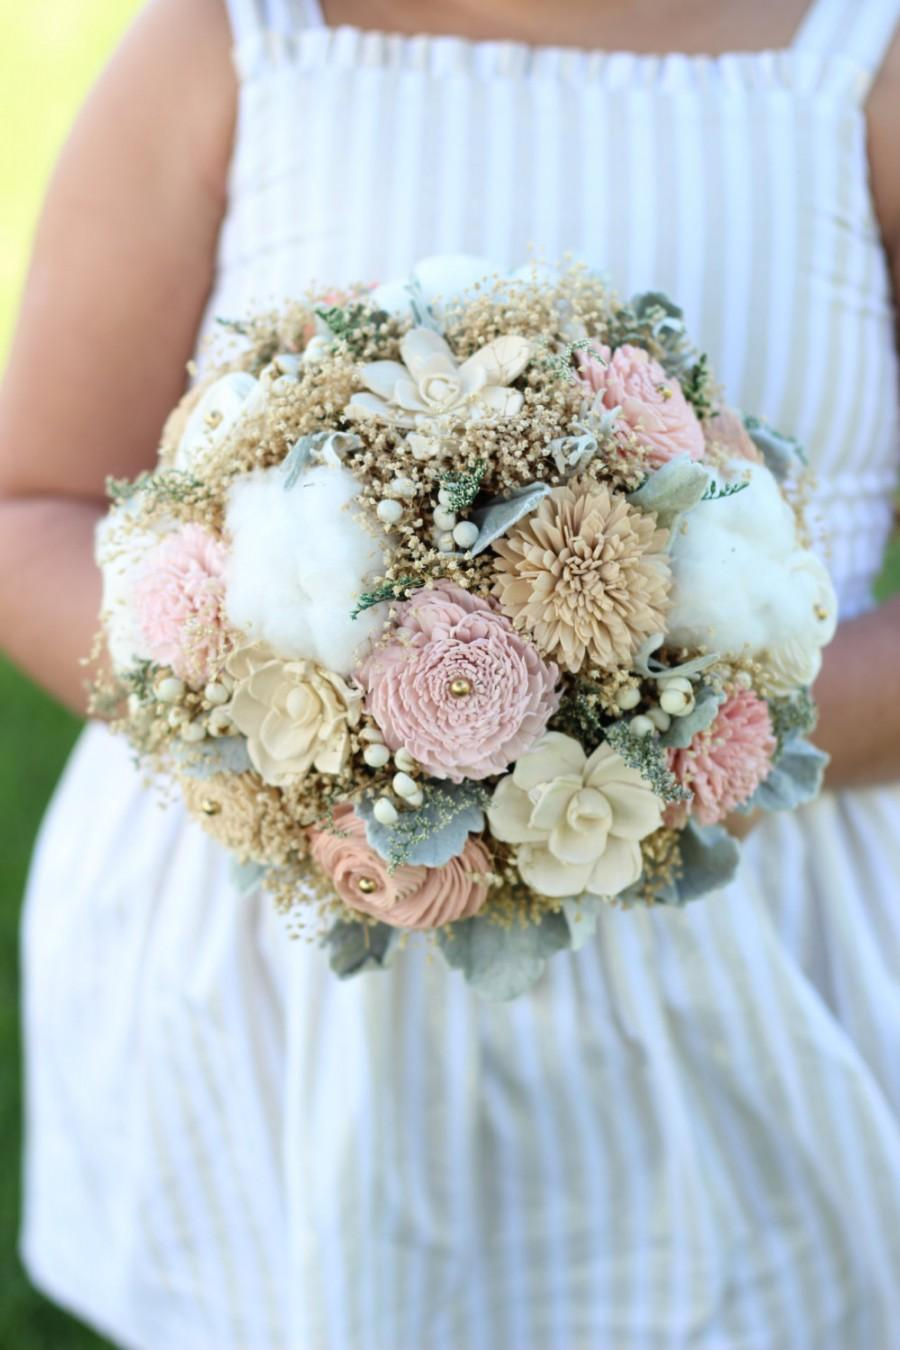 Hochzeit - Wedding Bouquet,Cotton/Tan/Pinks Bridal Bouquet, Romantic Bridal Bouquet, Alternative Bridal Bouquet, Keepsake Bridal Bouquet,Winter Bouquet